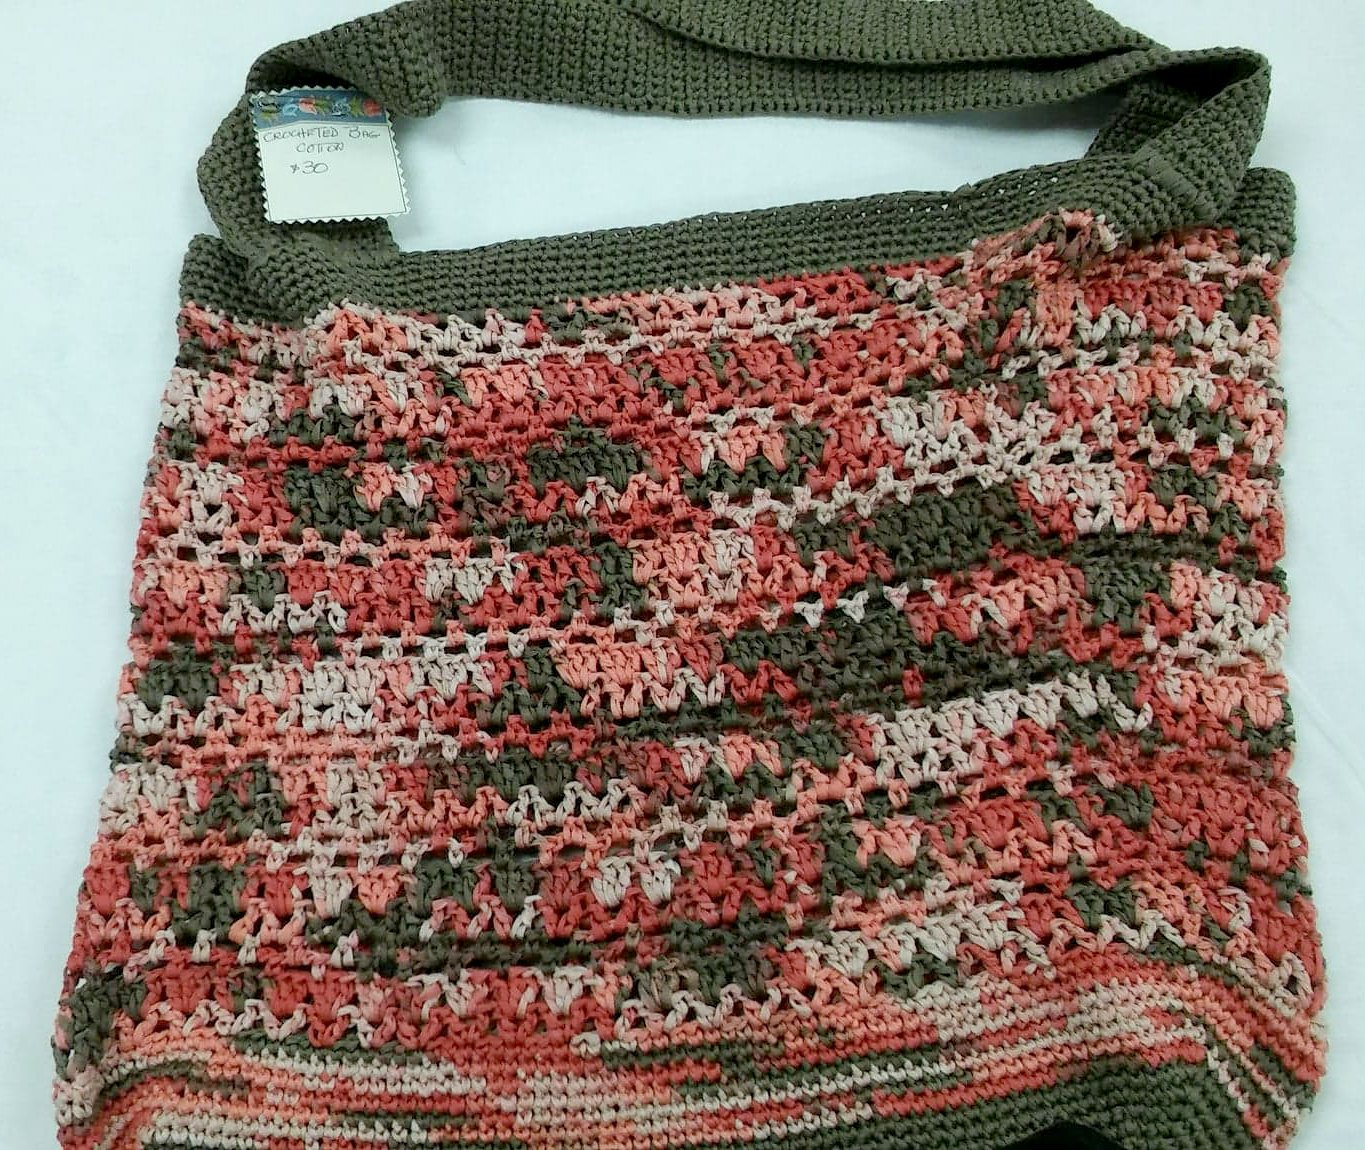 Crocheted Bag 100 percent Cotton